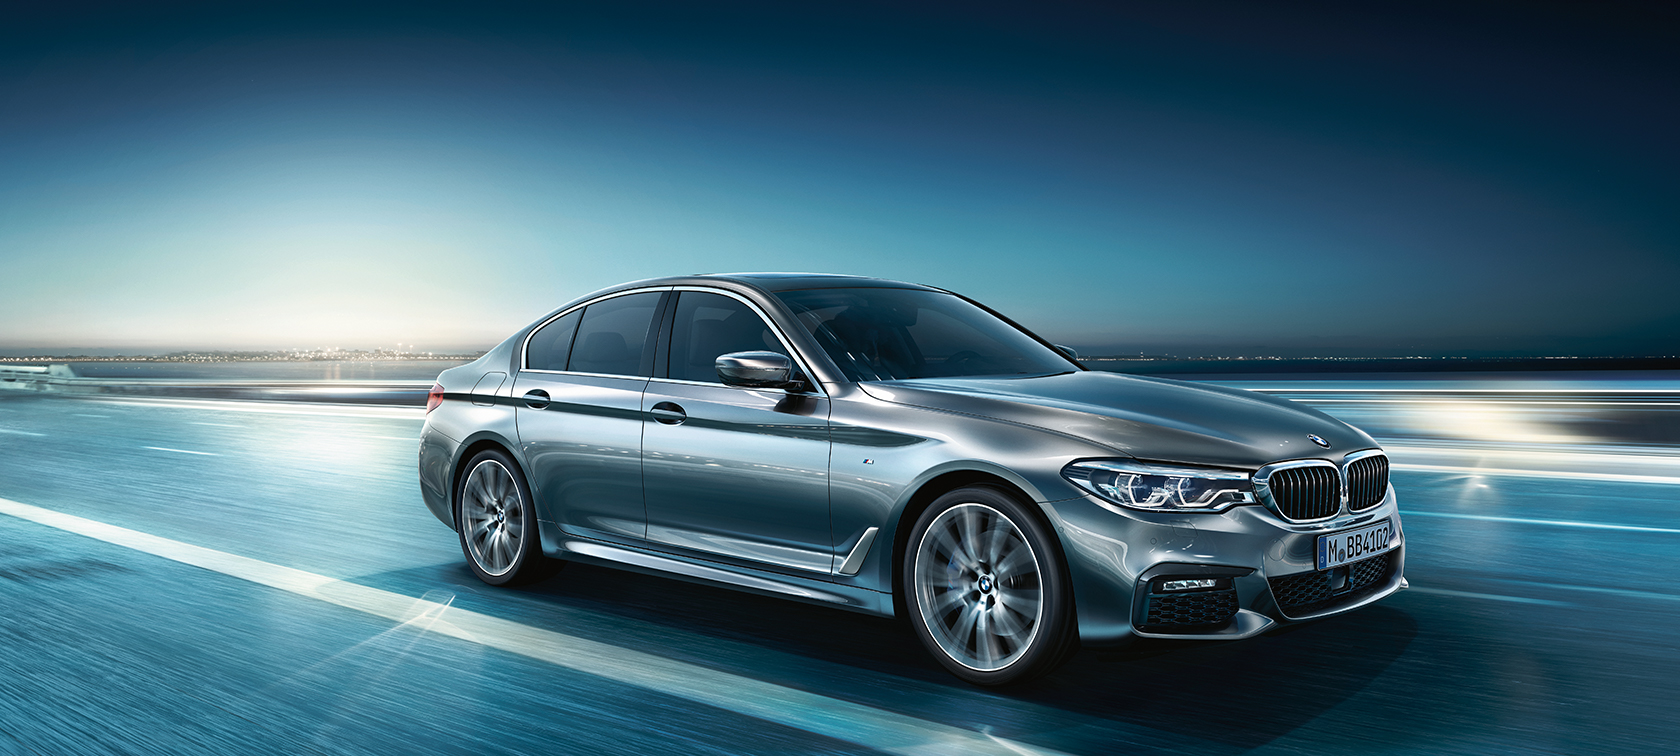 BMW 5-Series Sedan metallic color: modern perfection